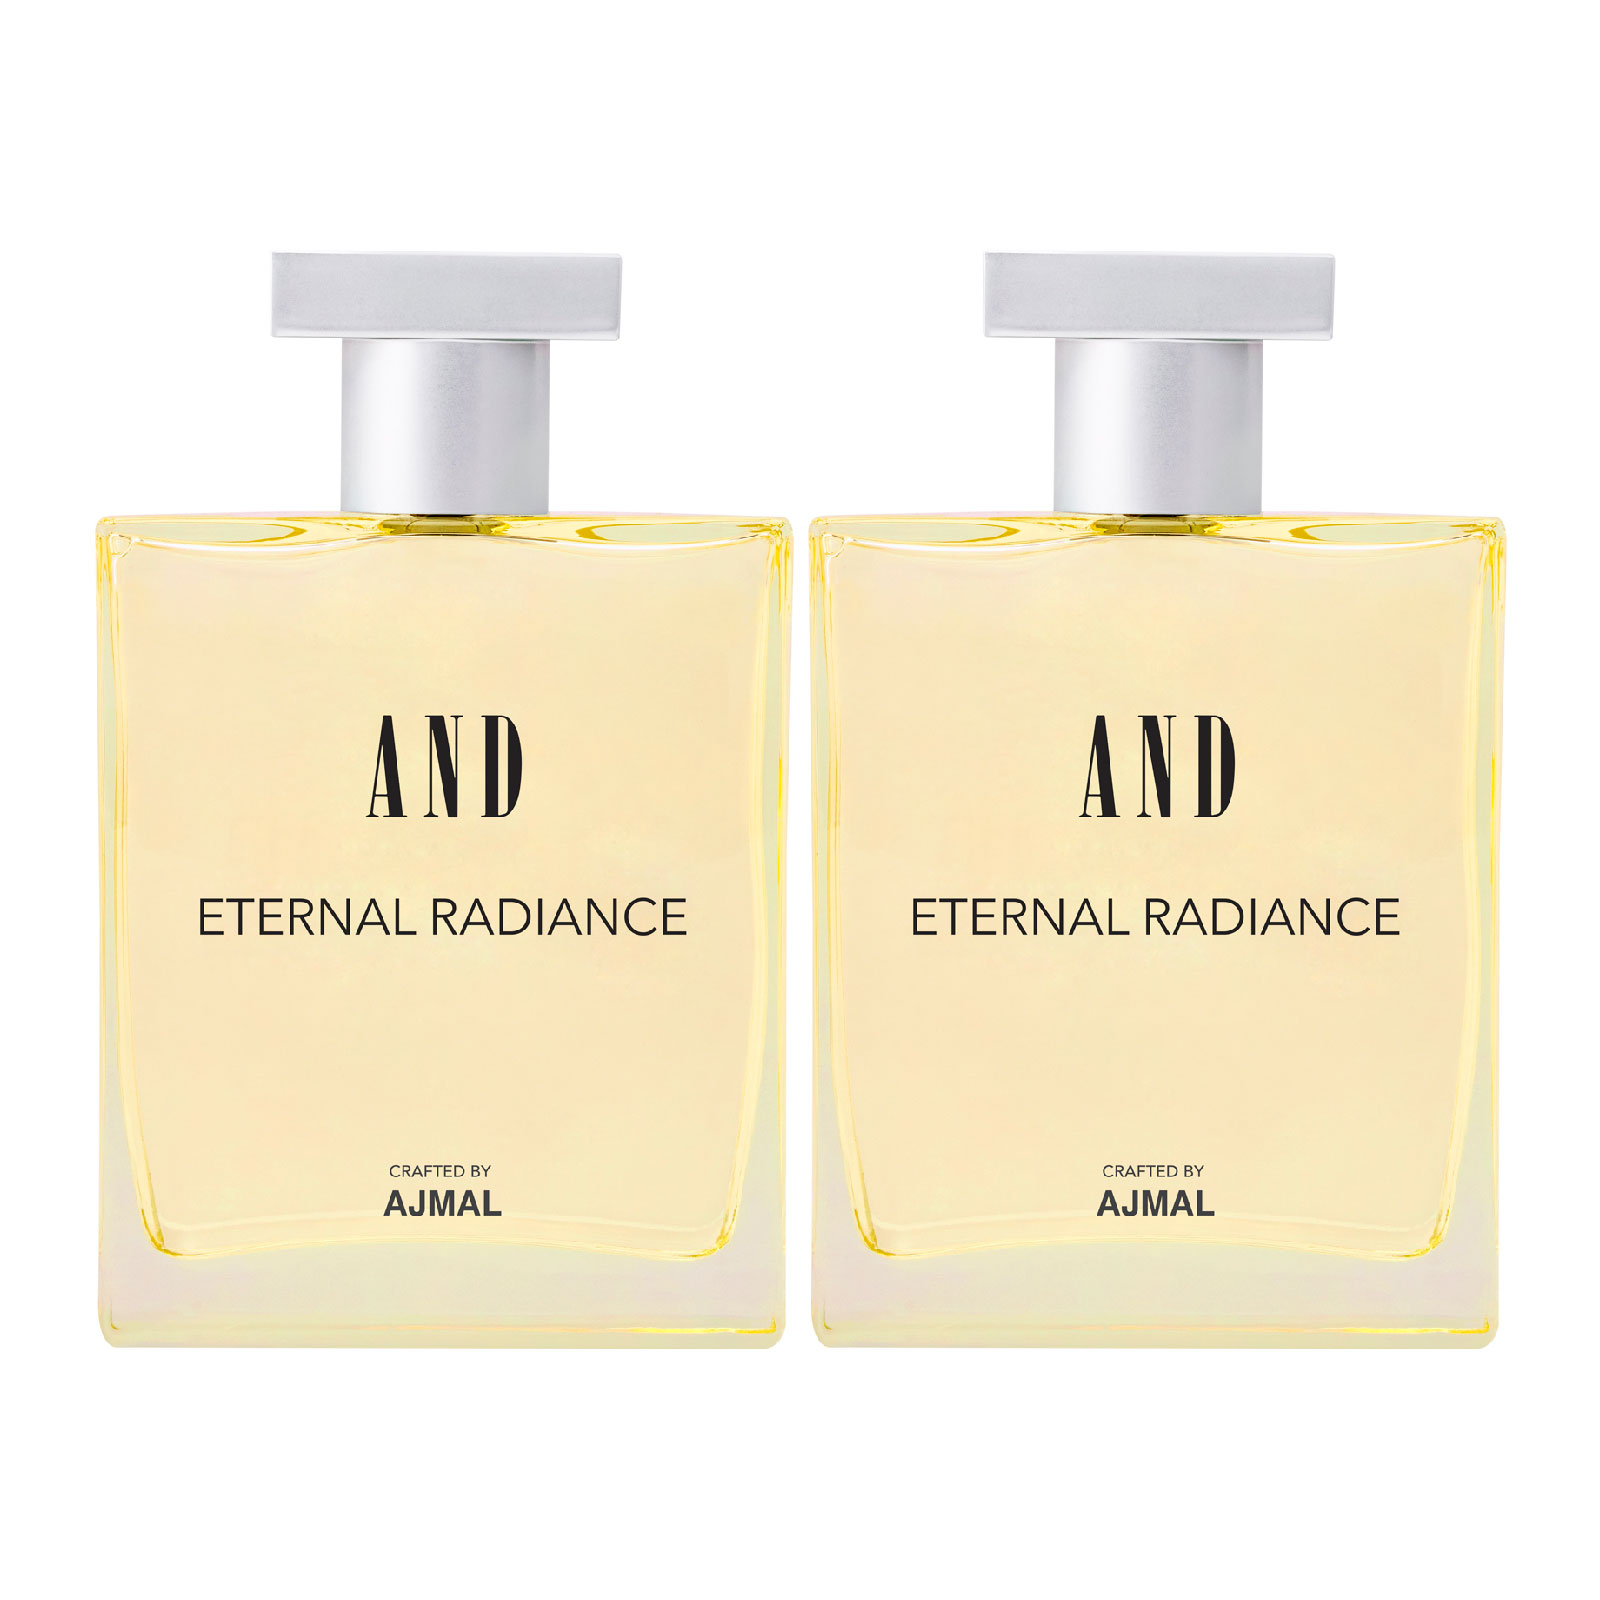 AND Crafted By Ajmal | AND Eternal Radiance Pack of 2 Eau De Parfum 50ML each for Women Crafted by Ajmal + 2 Parfum Testers